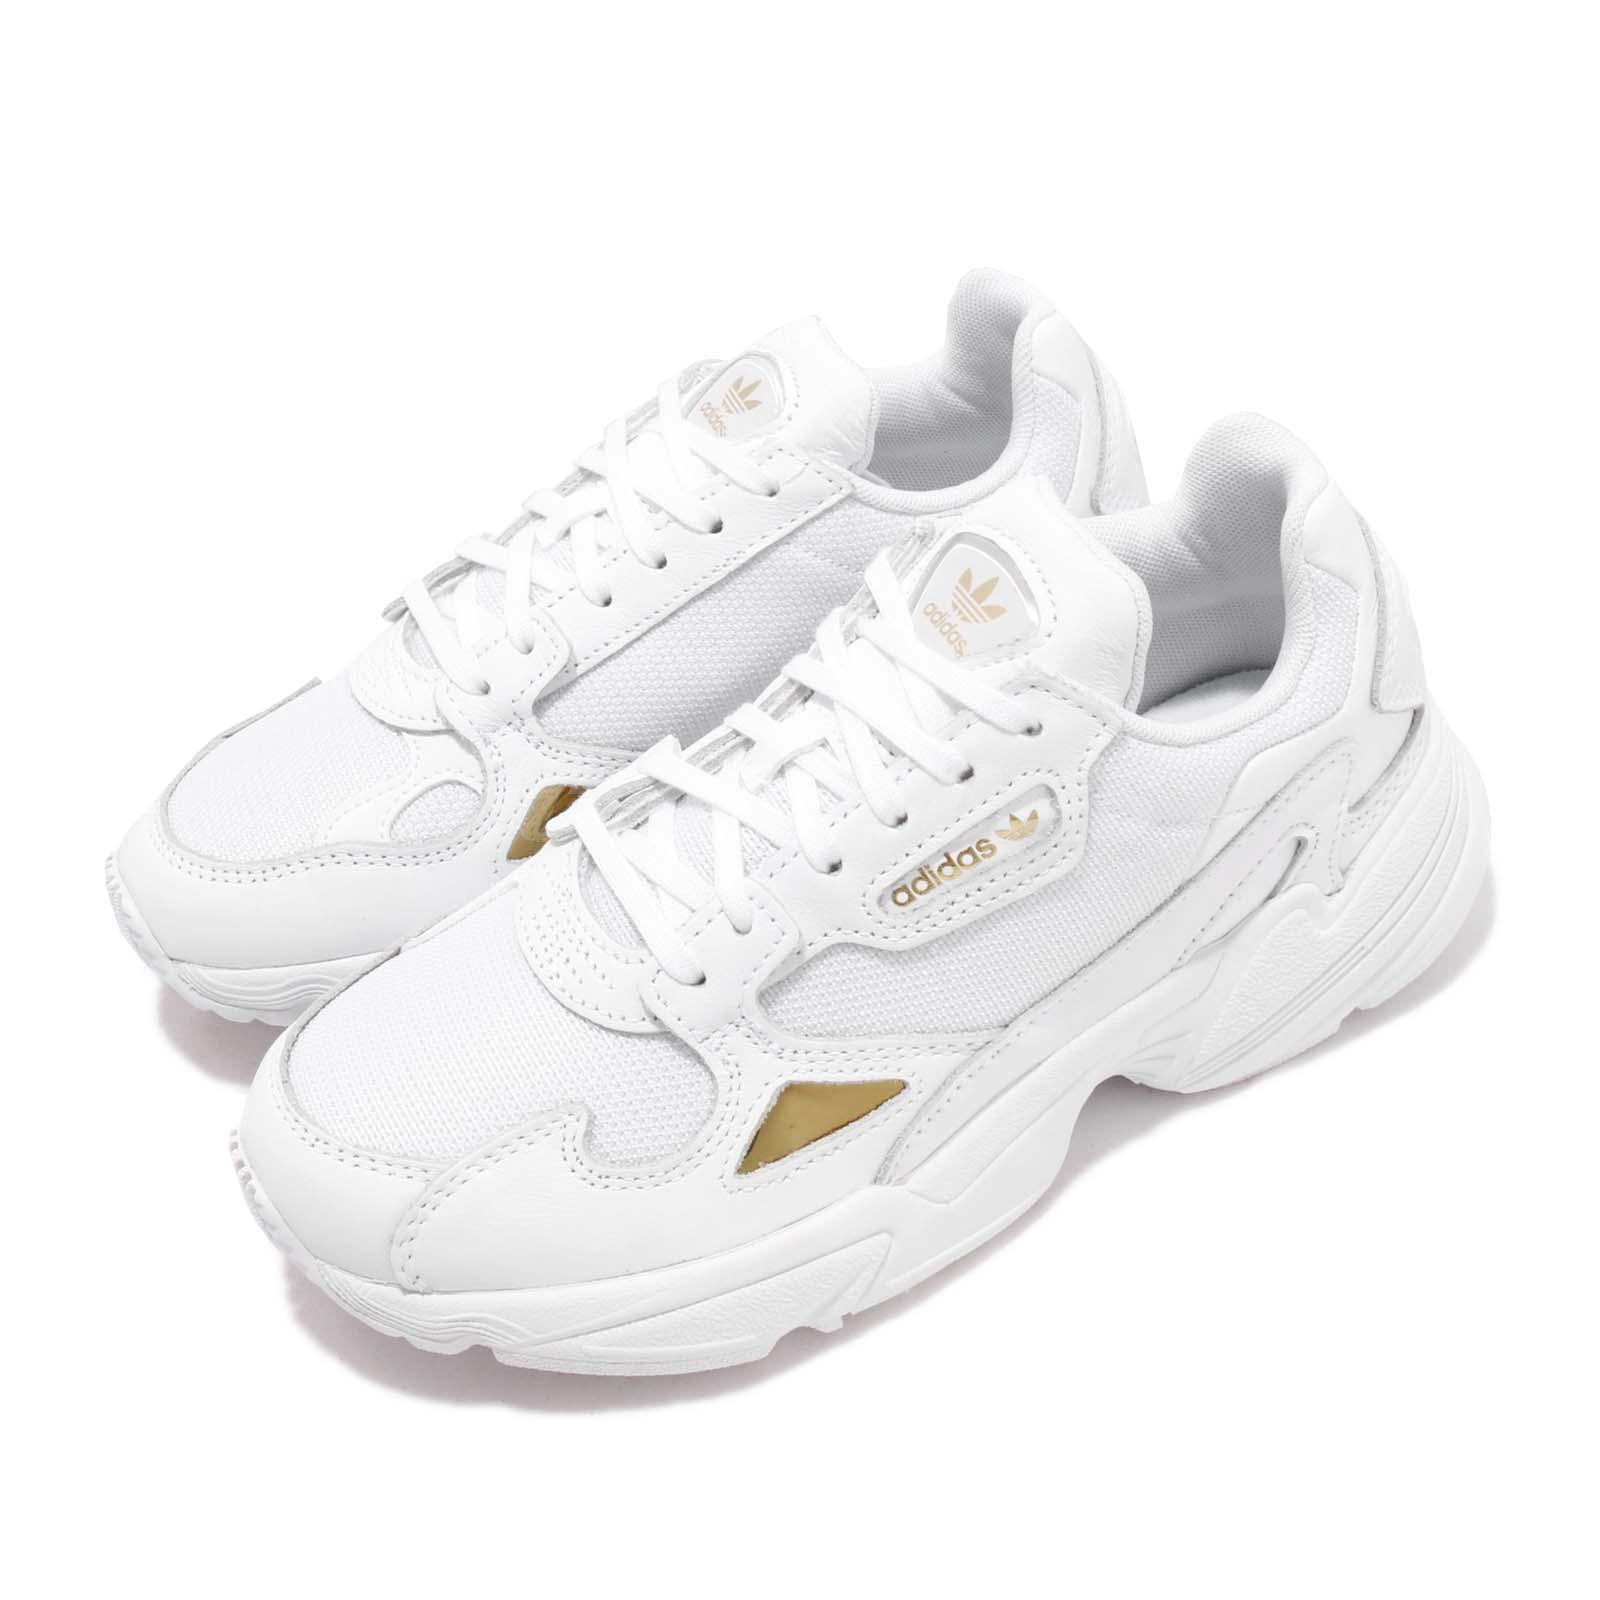 Details about adidas Originals Falcon W White Gold Metallic Women Running  Casual Shoes EE8838